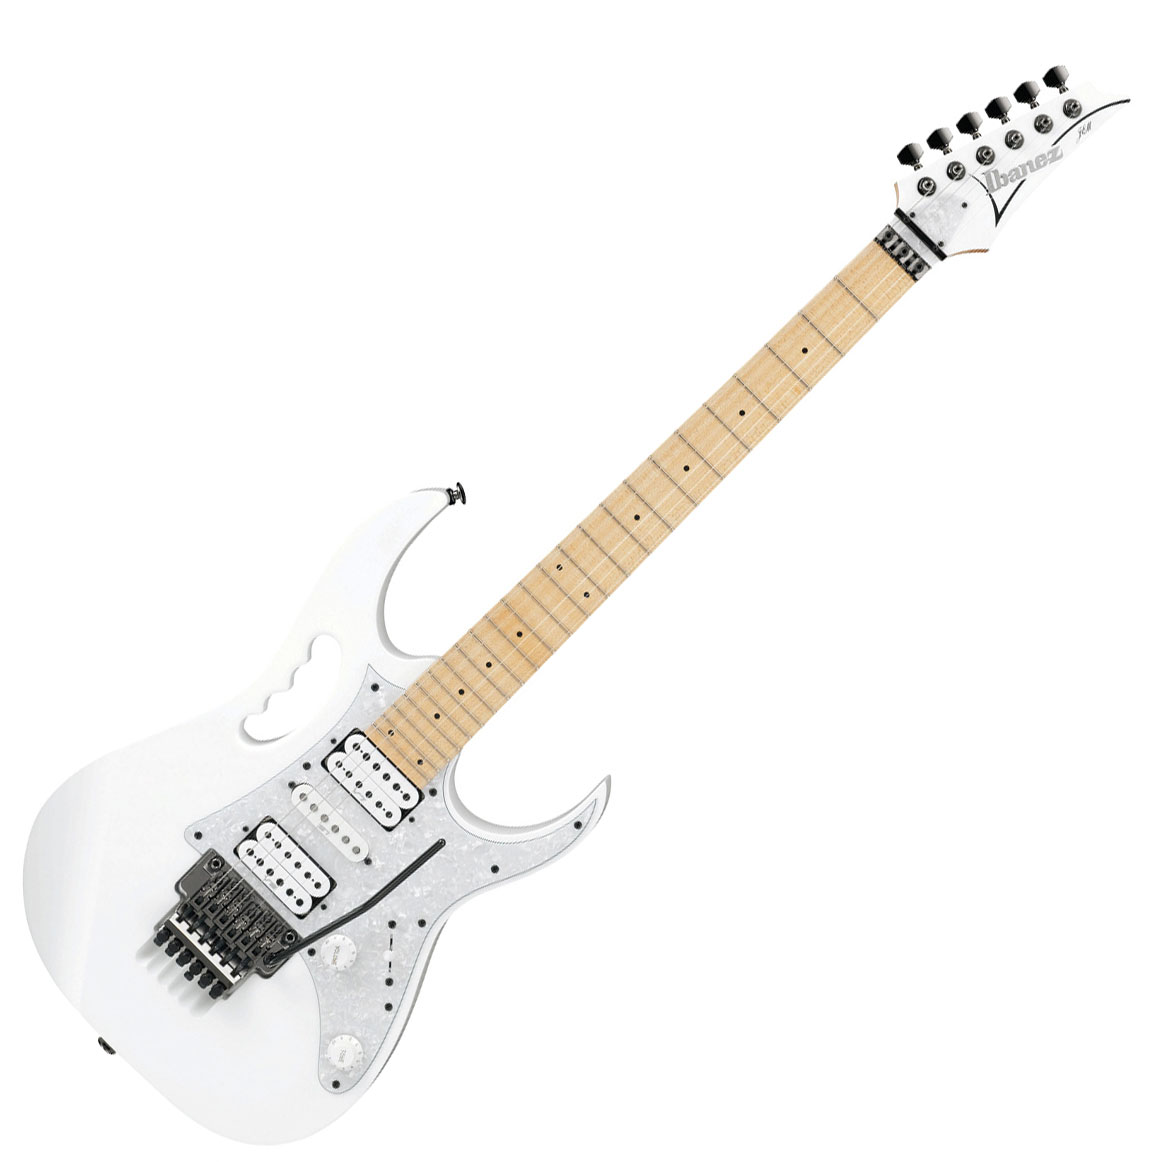 Ibanez Guitar 16909 Hd Wallpapers in Music   Imagescicom 1162x1162